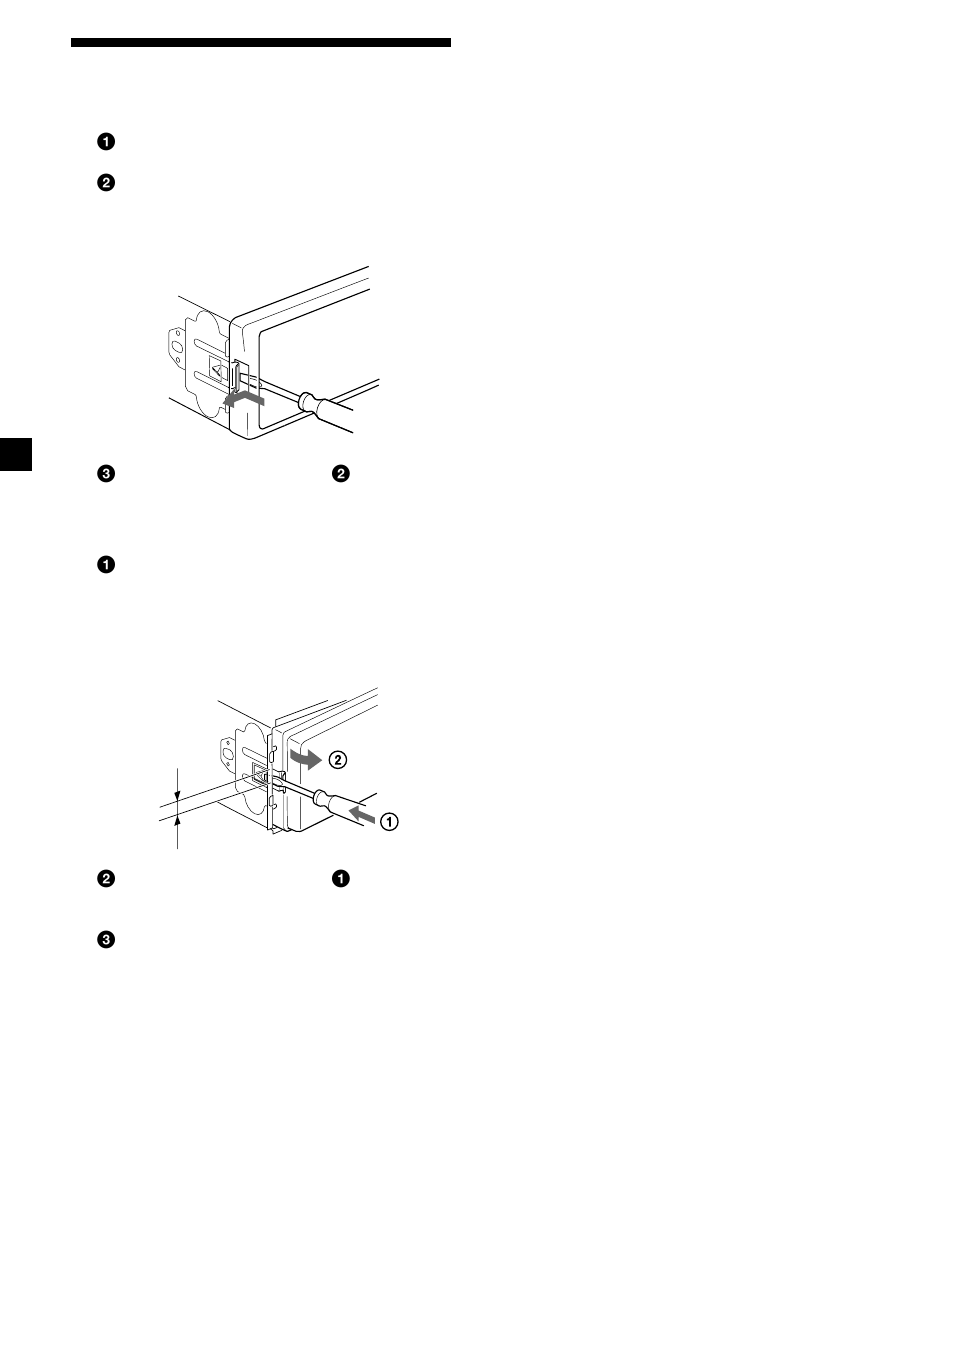 sony cdx l410 page42 20 ausbauen des ger�ts sony cdx l410 user manual page 42 112 sony cdx l410x wiring diagram at mifinder.co